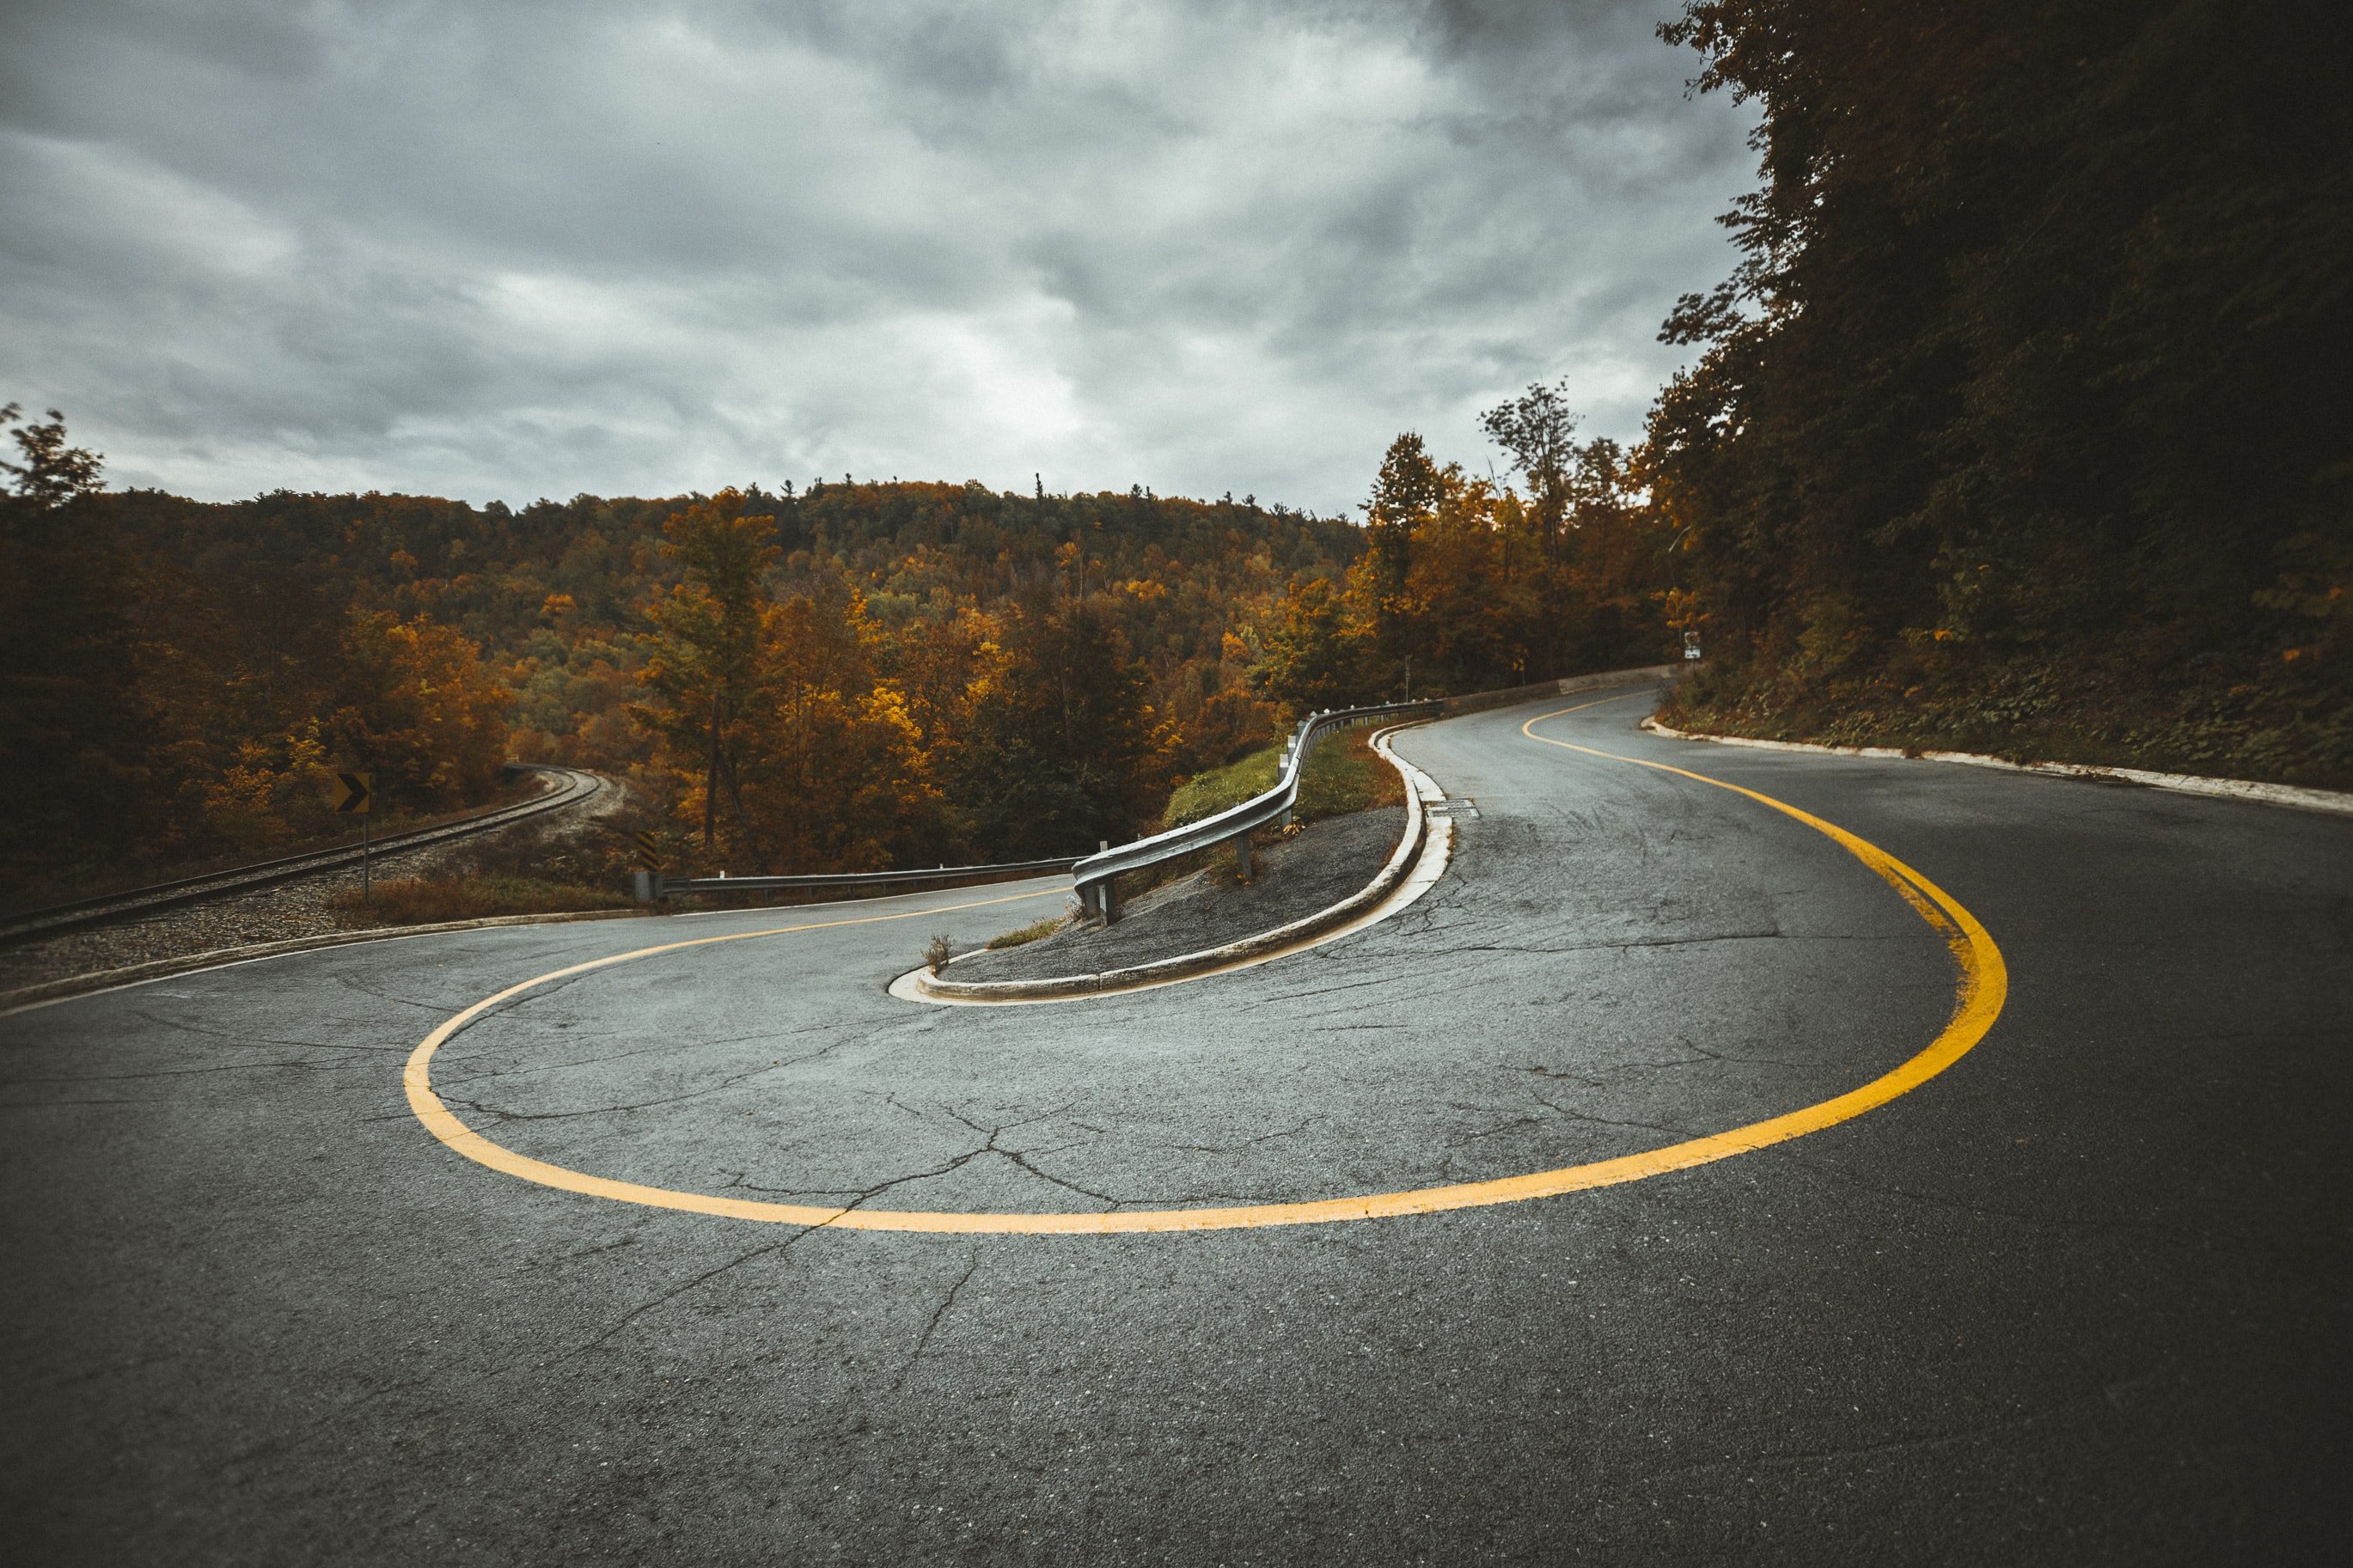 A sharp curve in an asphalt road surrounded by autumn-colored trees in Caledon